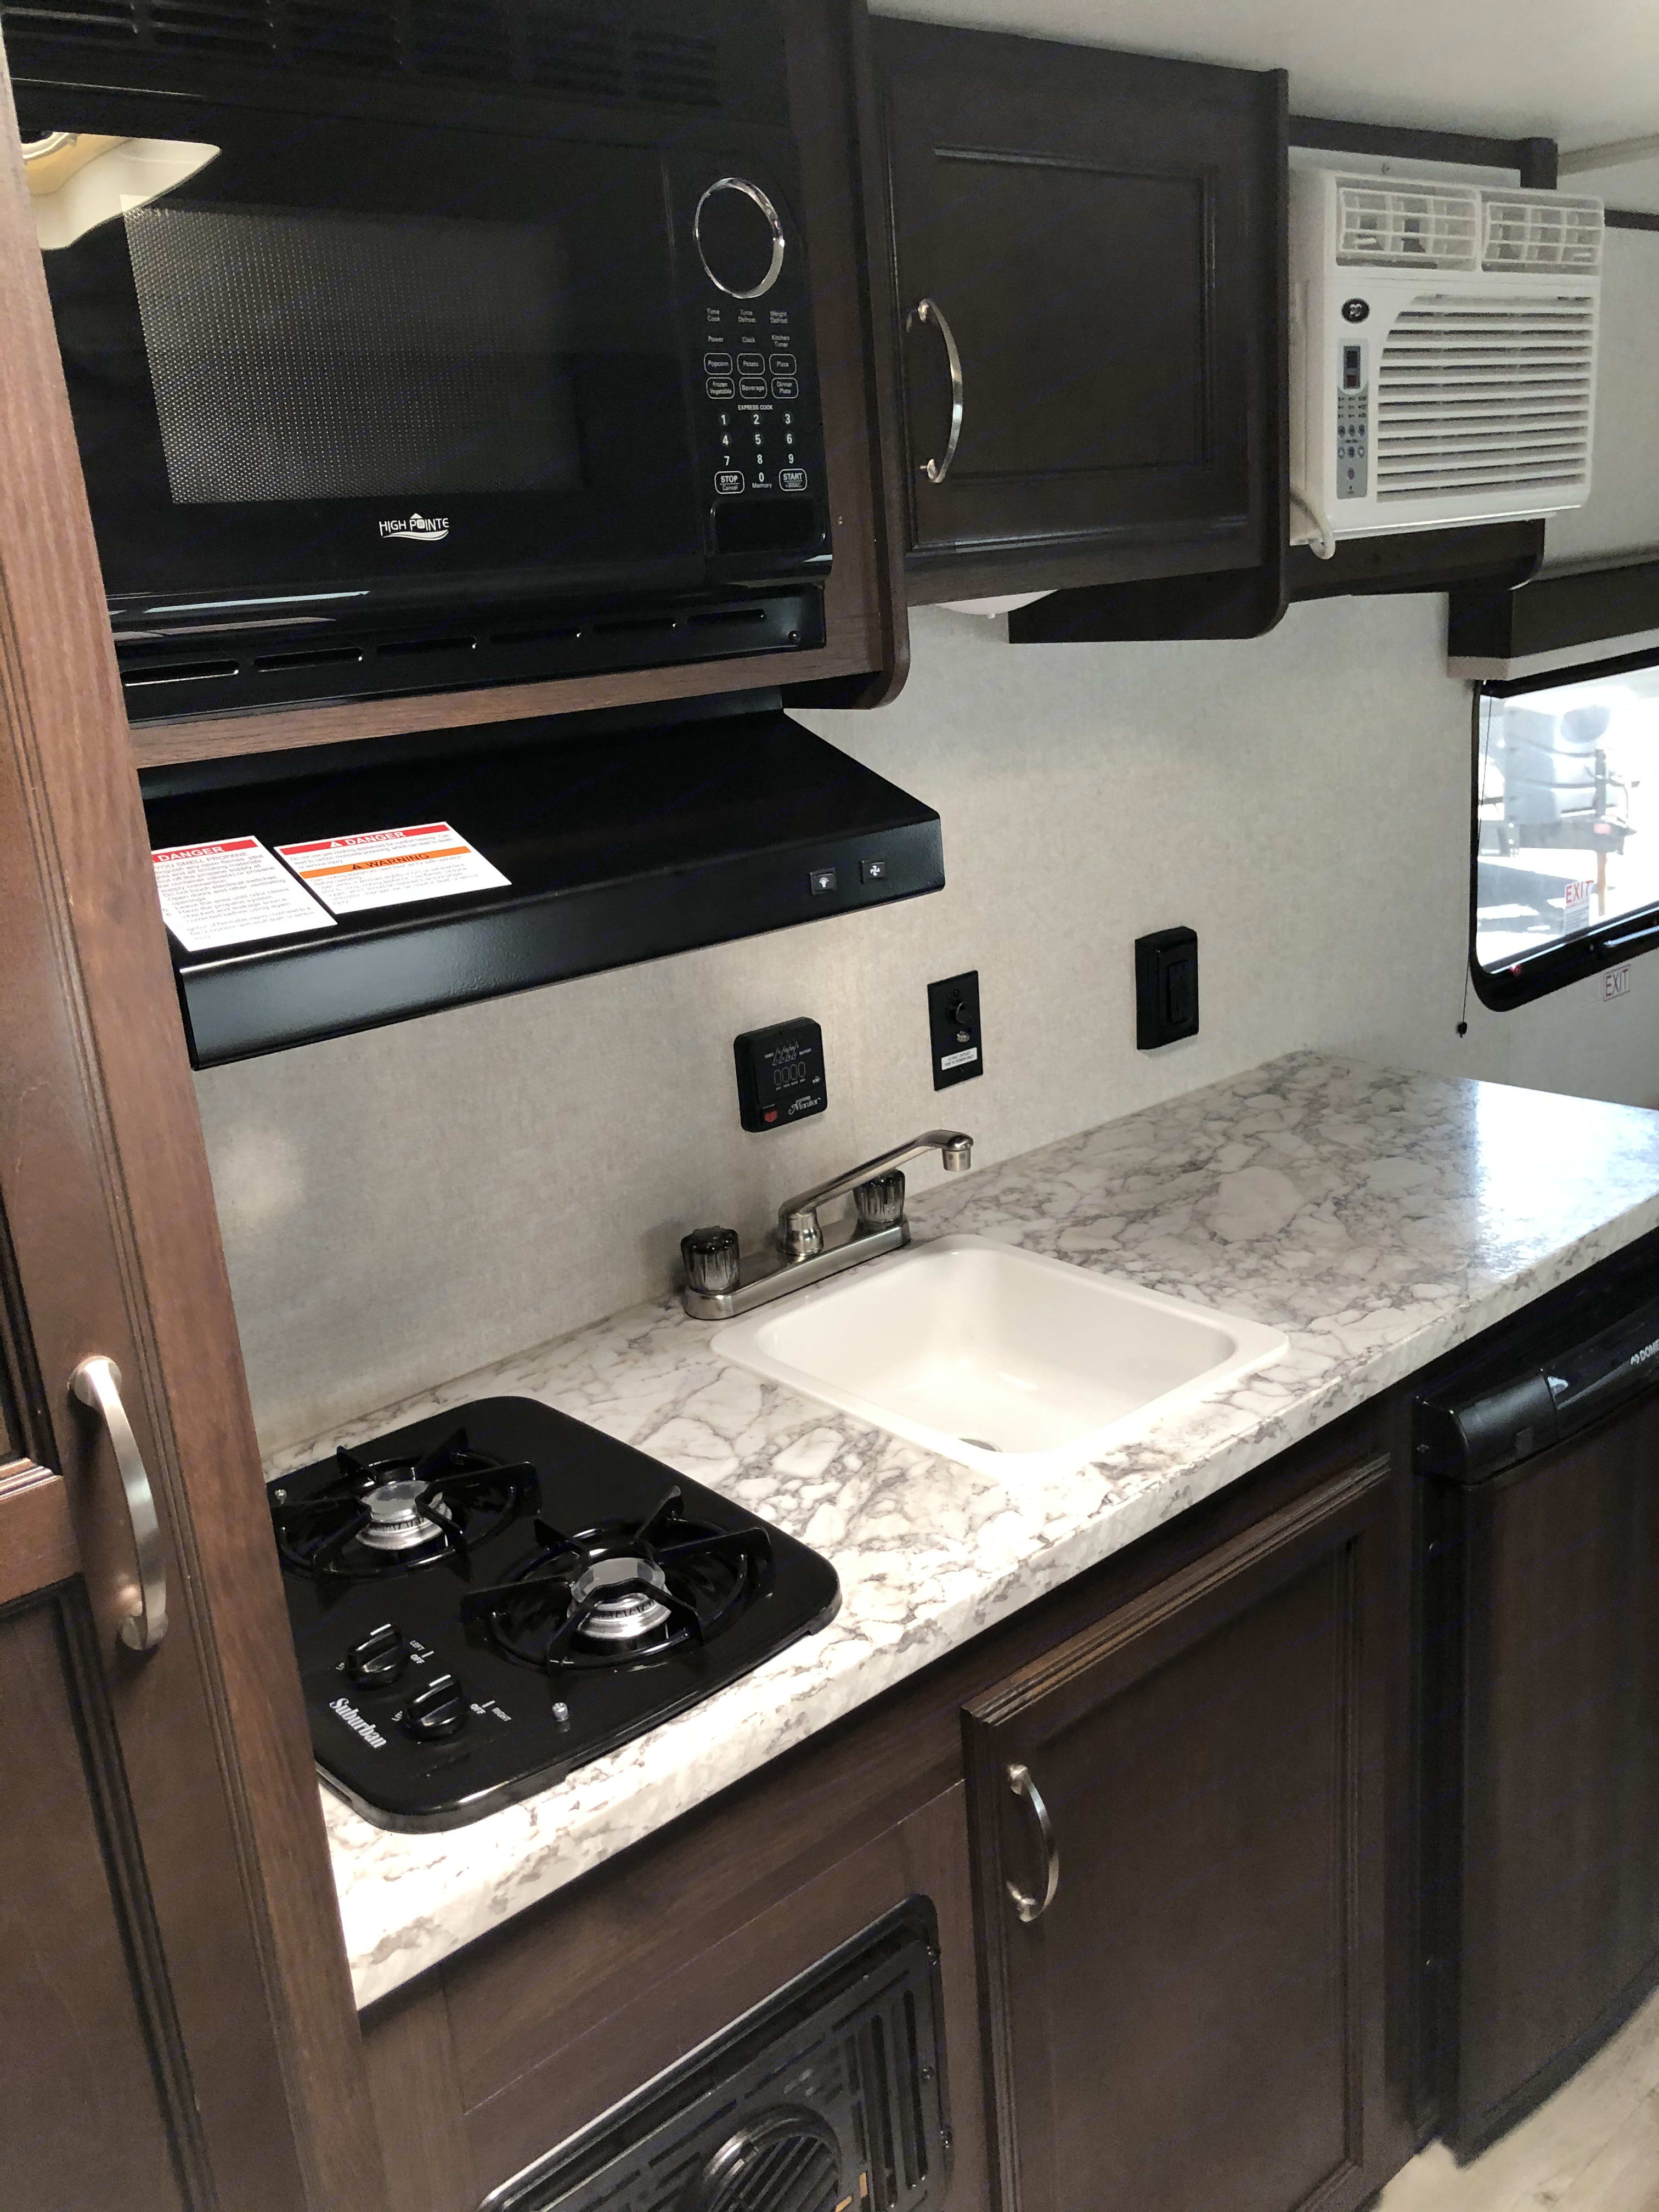 Rainy day? We got you covered with a full indoor kitchen!. Jayco Jay Flight 2018